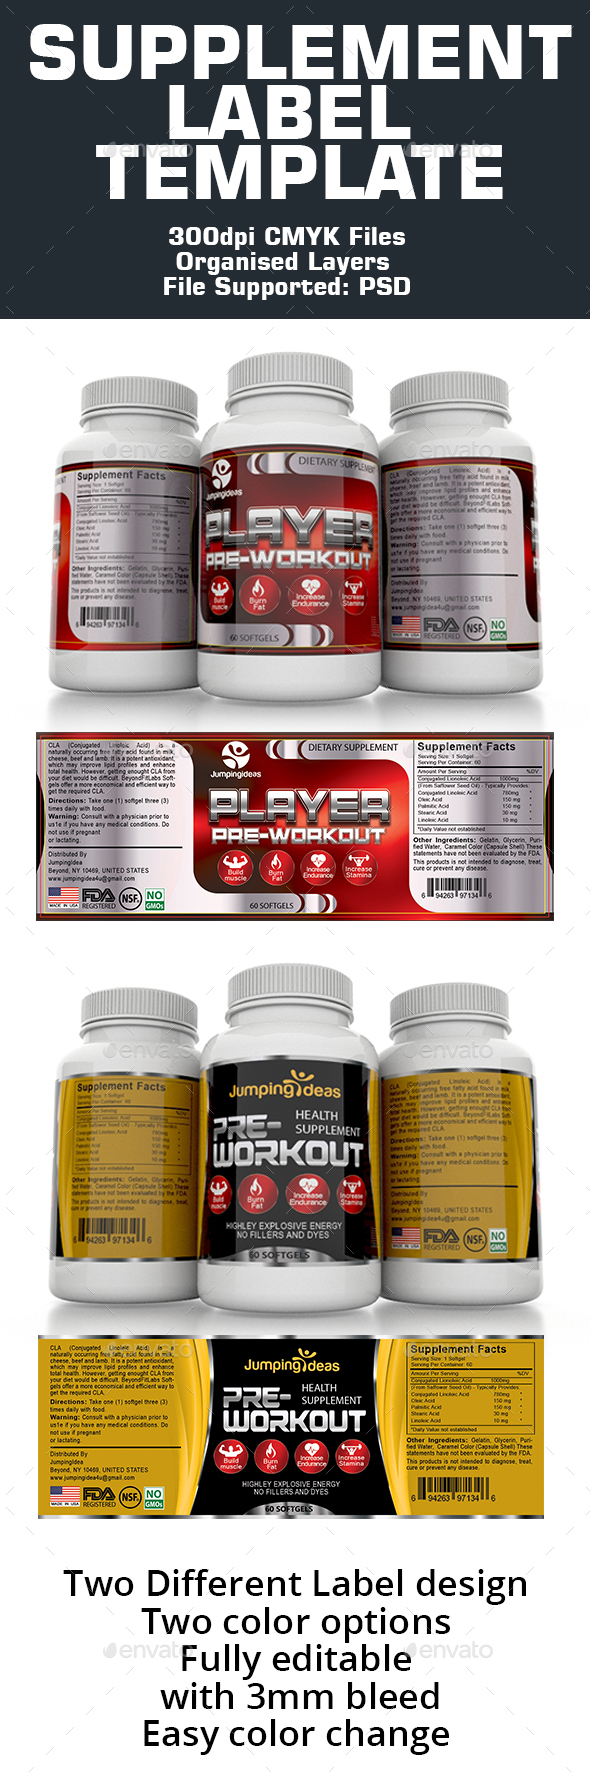 Supplement Label Template